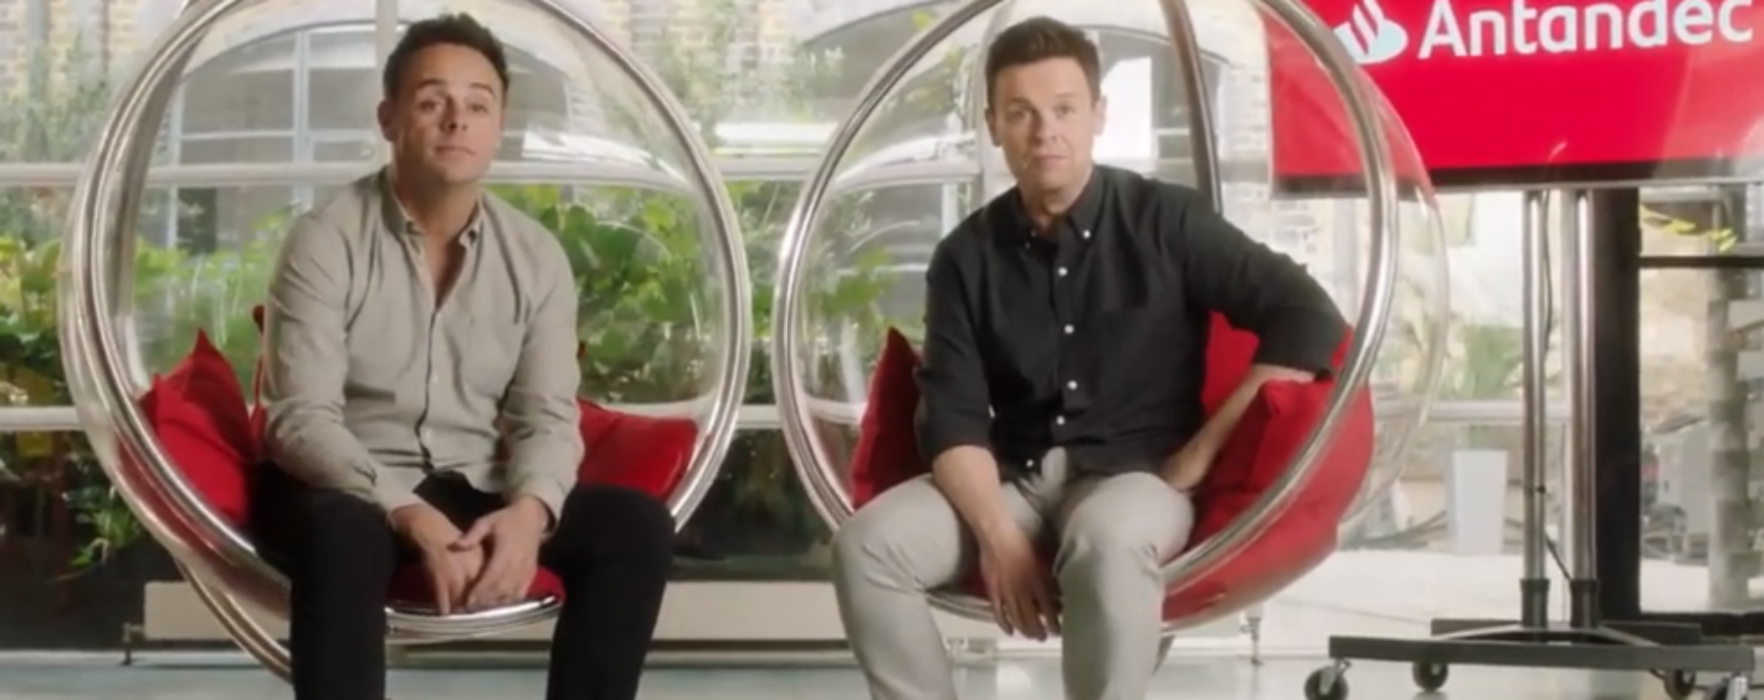 WATCH: TV duo Ant and Dec have opened their own bank